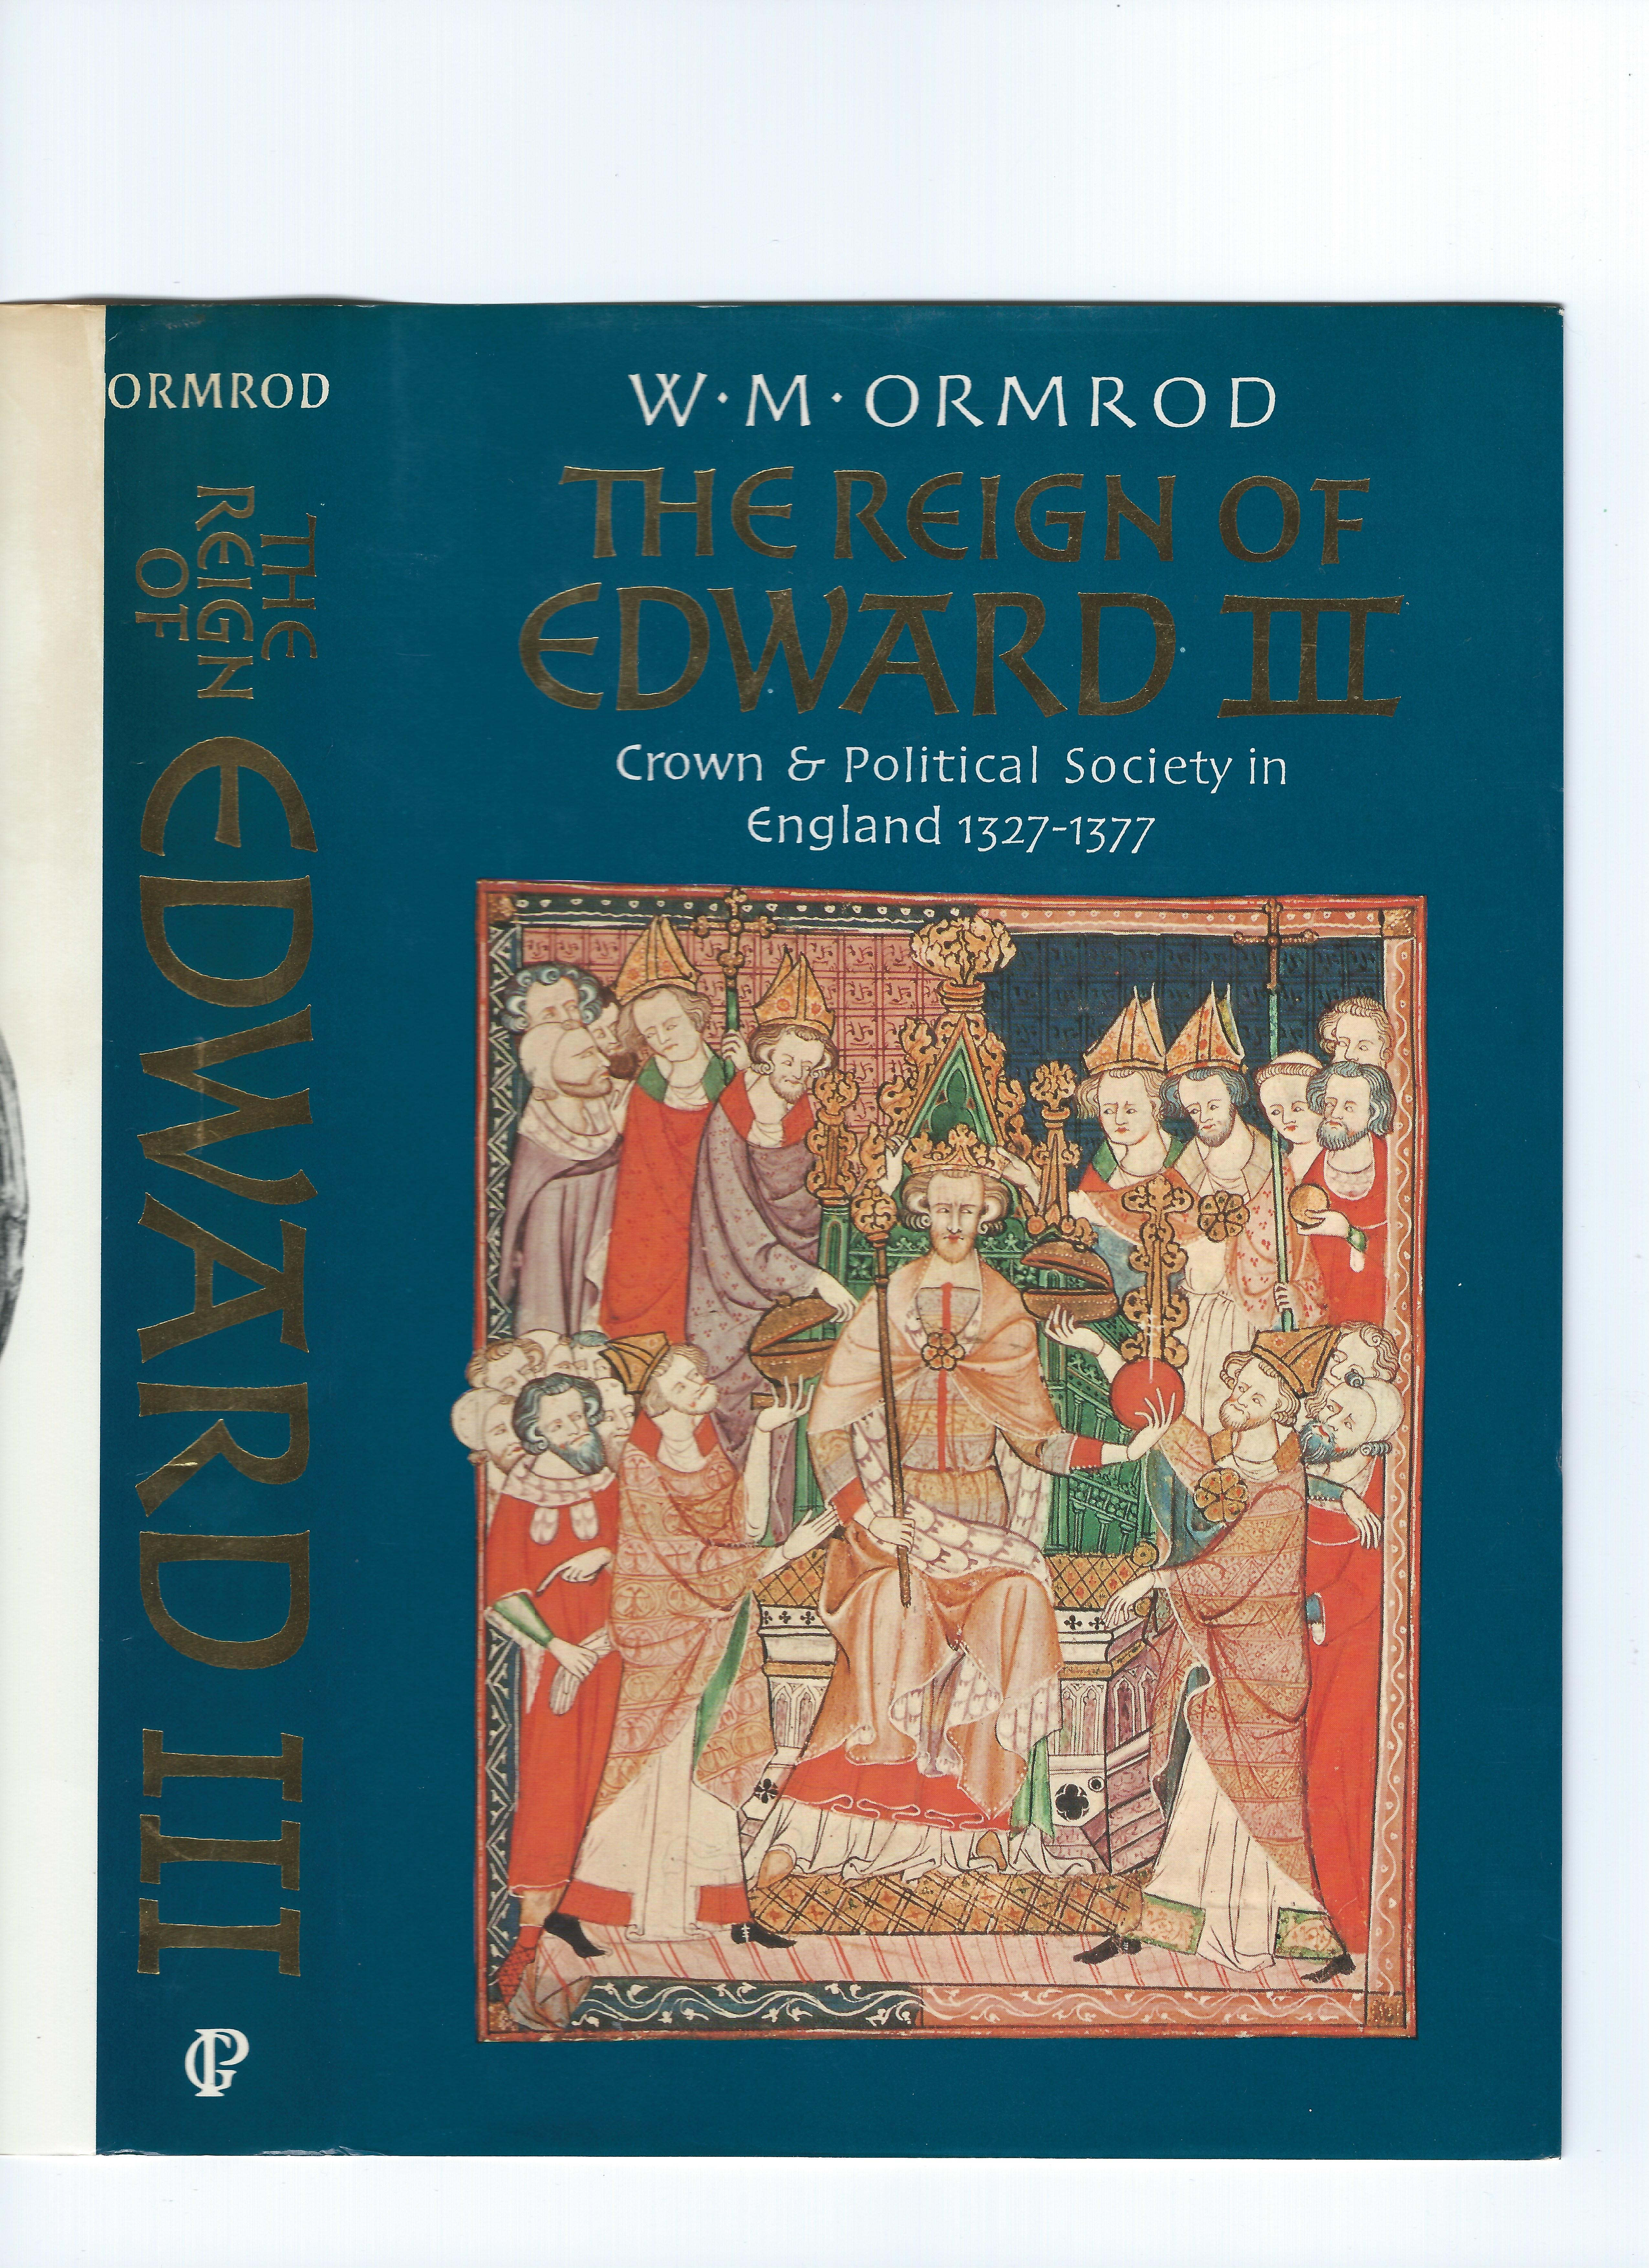 Book on the life and times of Edward III